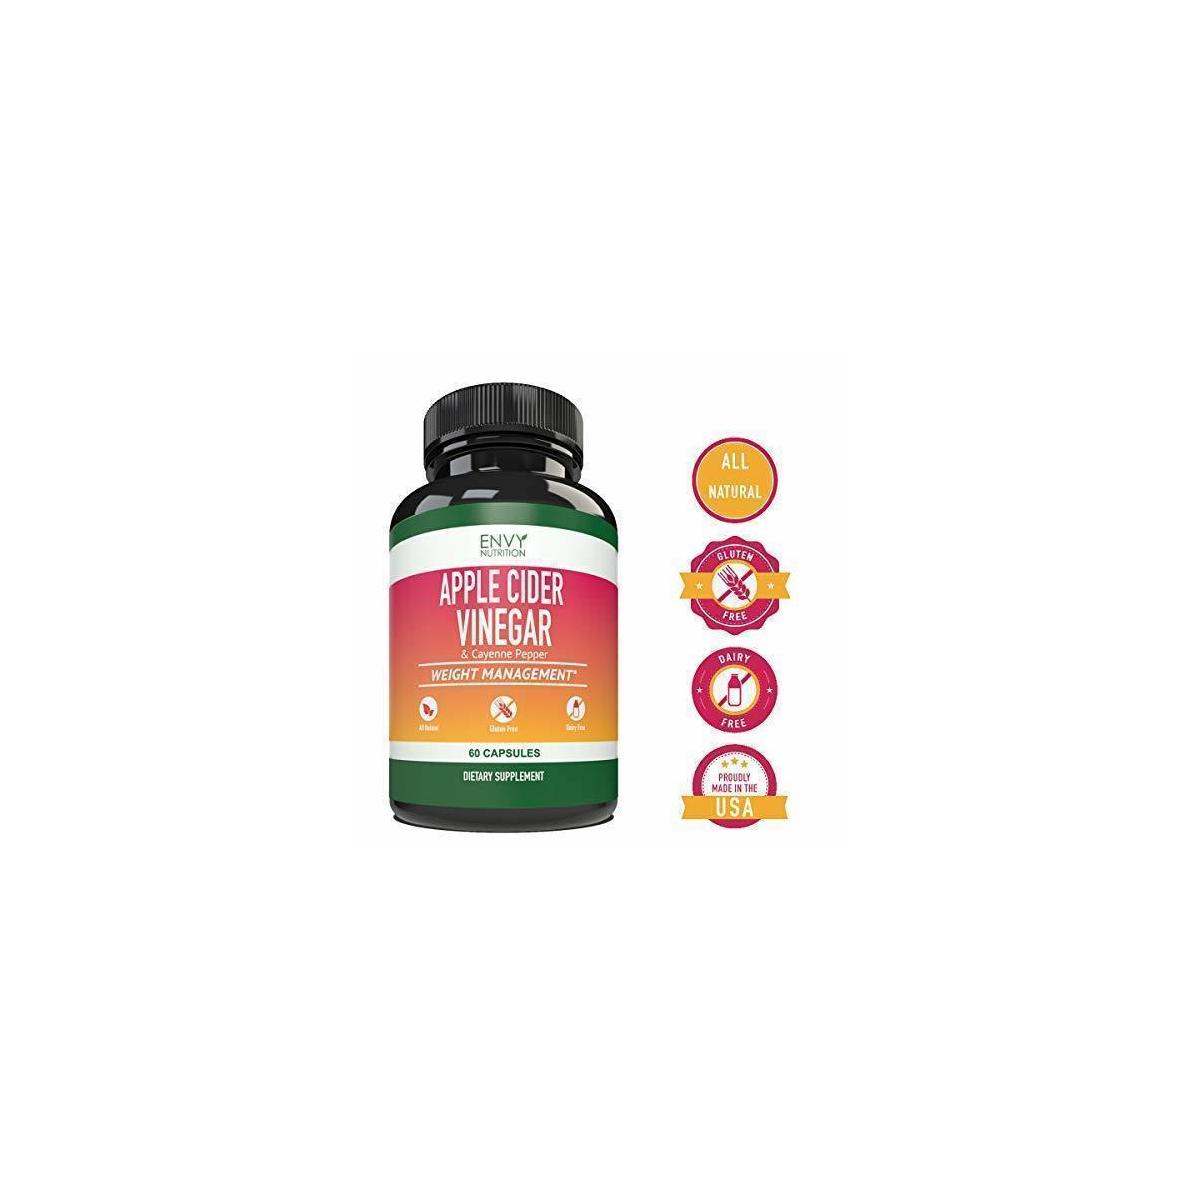 Envy Nutrition Apple Cider Vinegar Capsules- Supports Weight Loss, Immunity, Gut Health, Blood Sugar Level and Heart Health- 60 Count